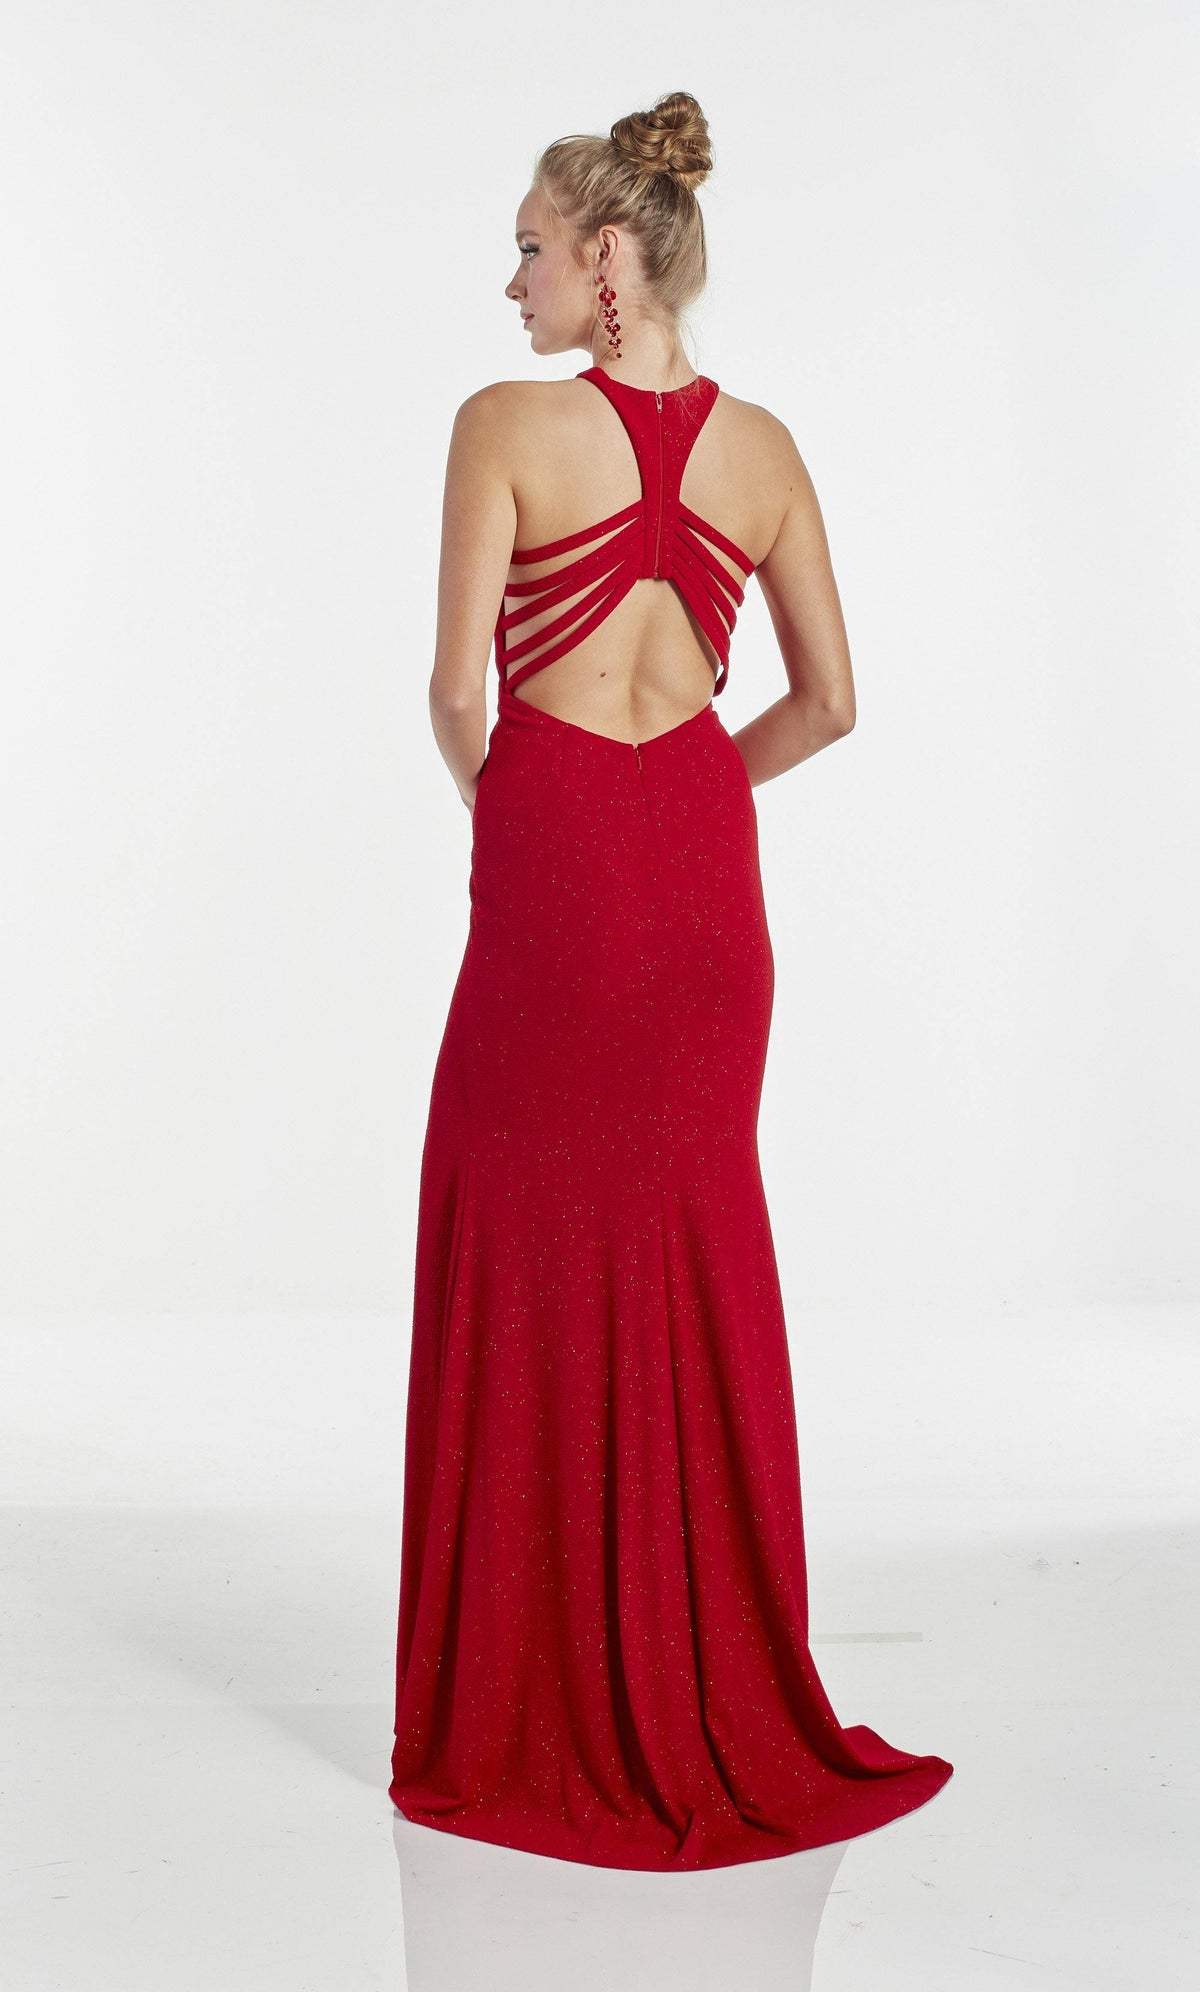 Red glitter jersey halter prom dress with a racerback and train